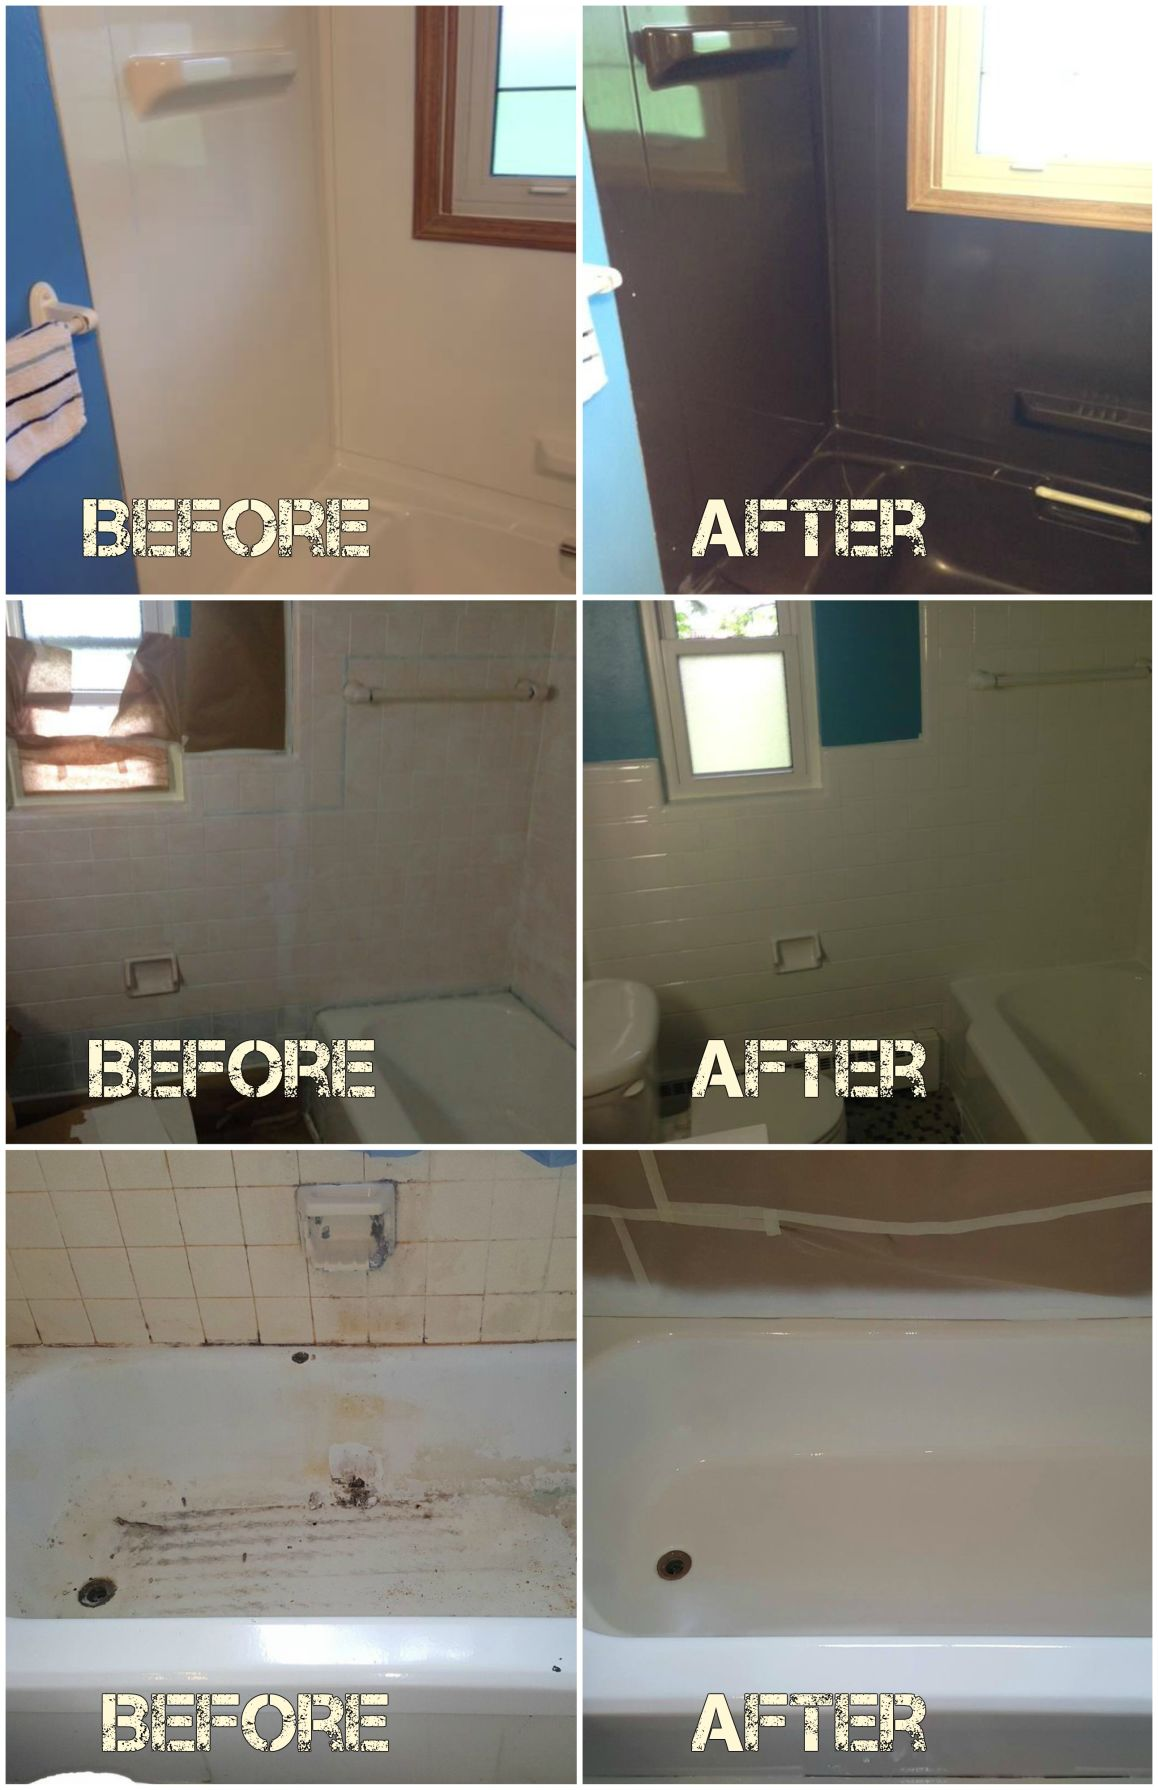 Bath magic bathroom bathtub madison wi hostdison tarnished your tub sink or tiles to begin with we offer resurfacing reglazing and refinishing solutions to make your bathroom look great again dailygadgetfo Image collections